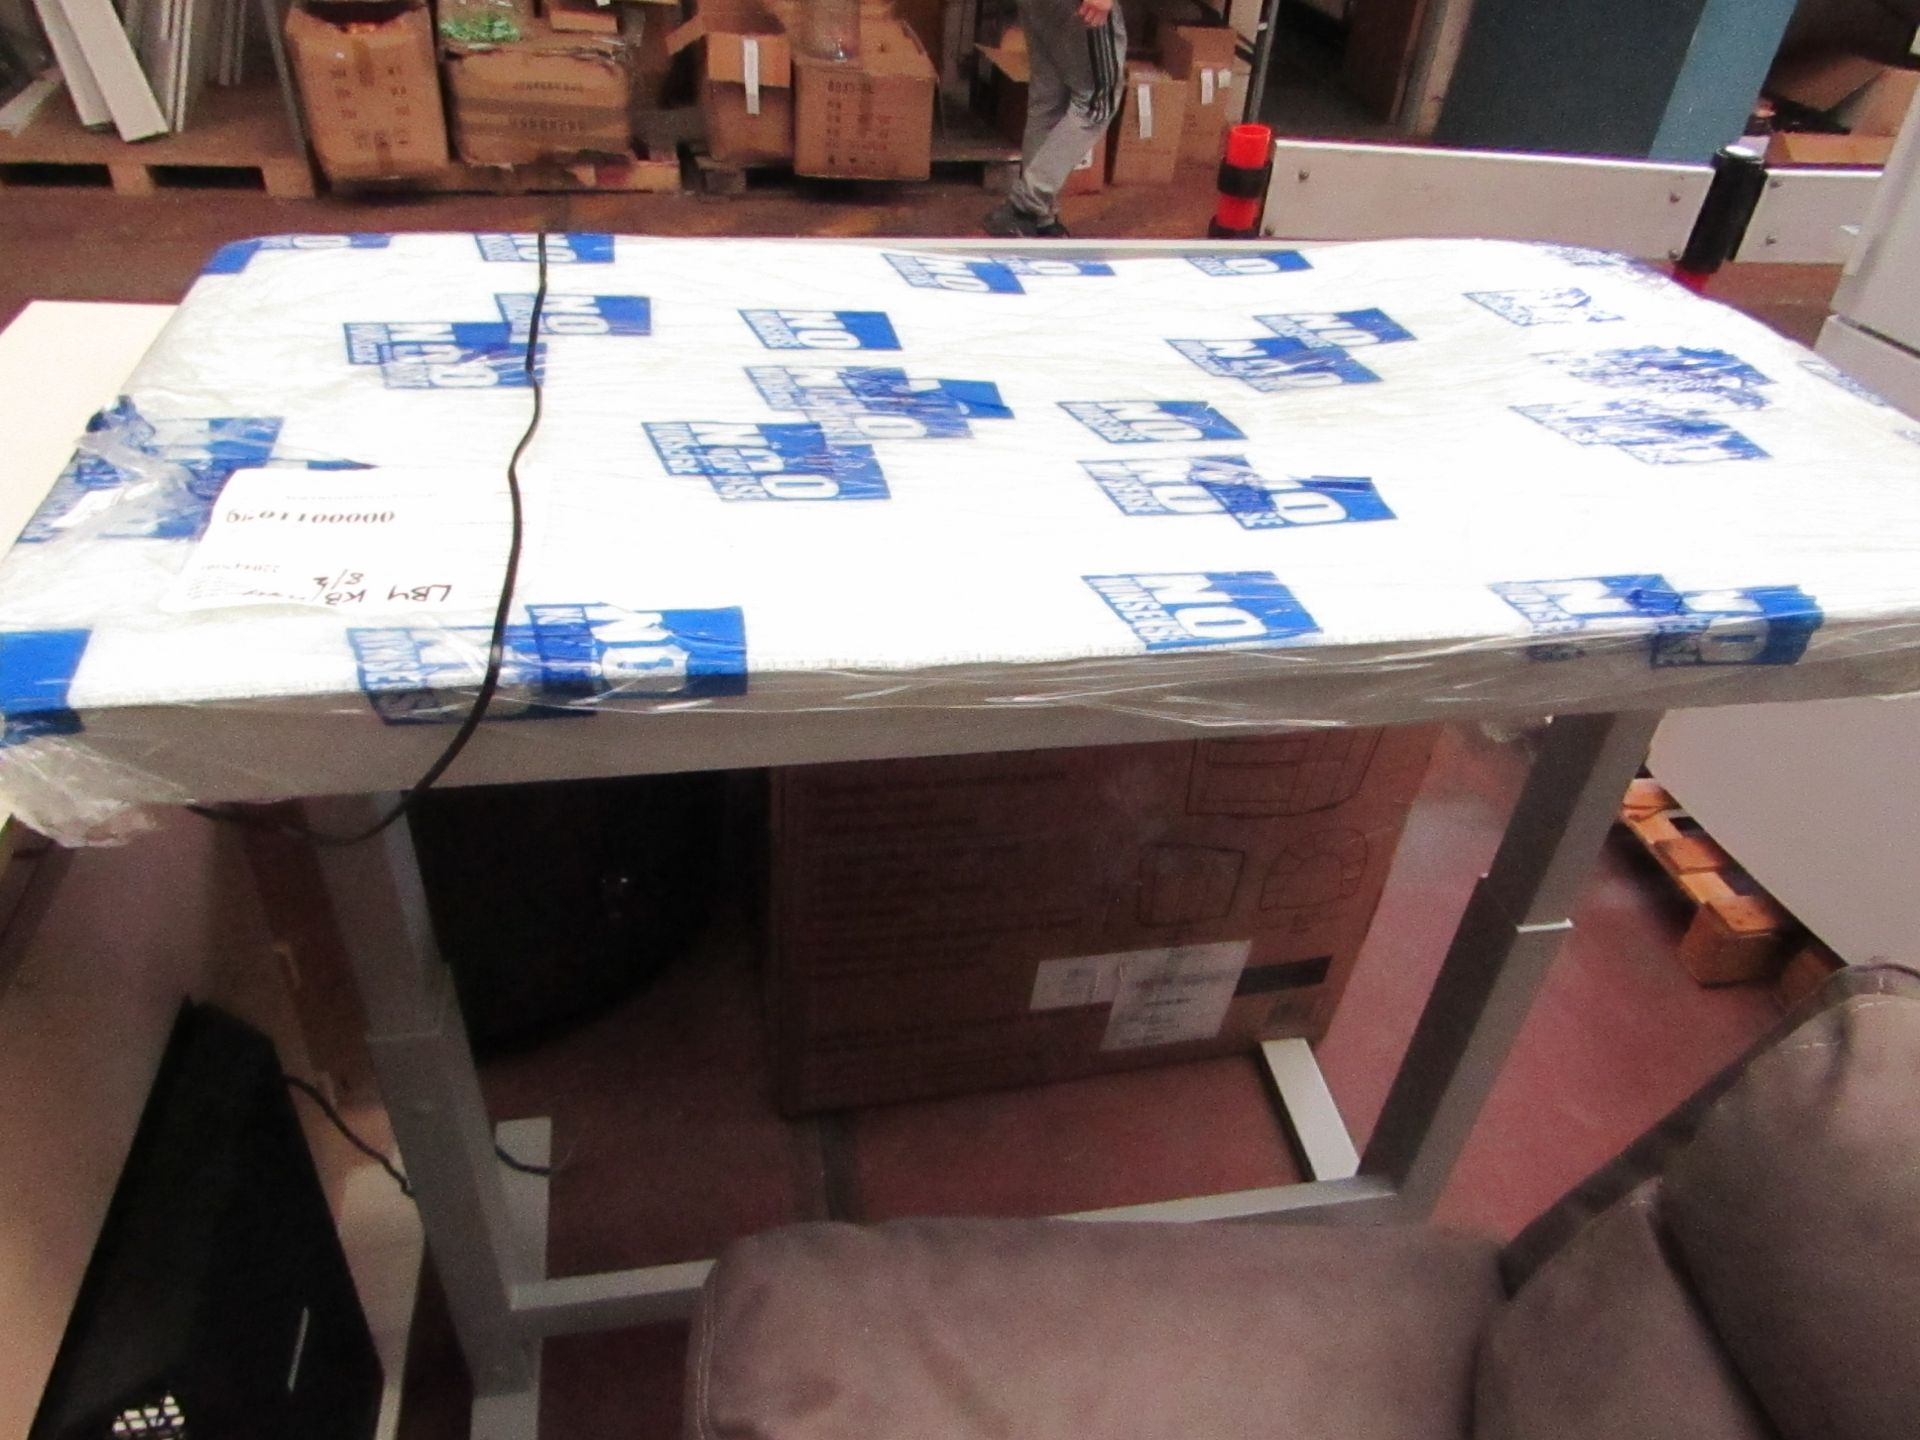 Lot 31 - Twinstar electric adjustable height desk, the mechanism works but the glass desk top is smashed